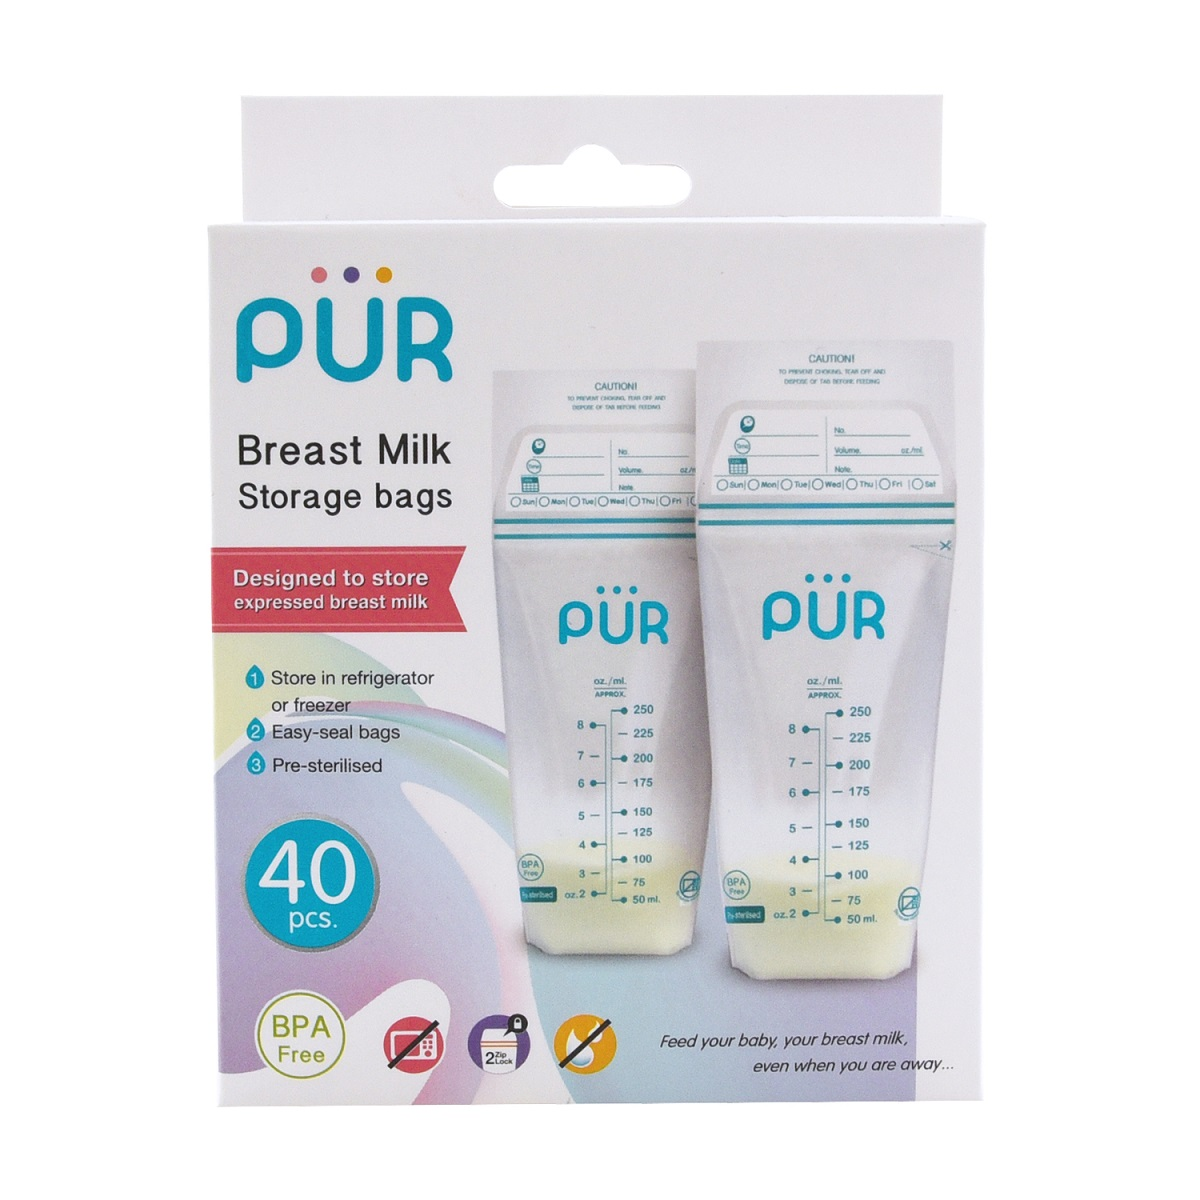 Pur Breast milk storage bags – 40 bags (6202)